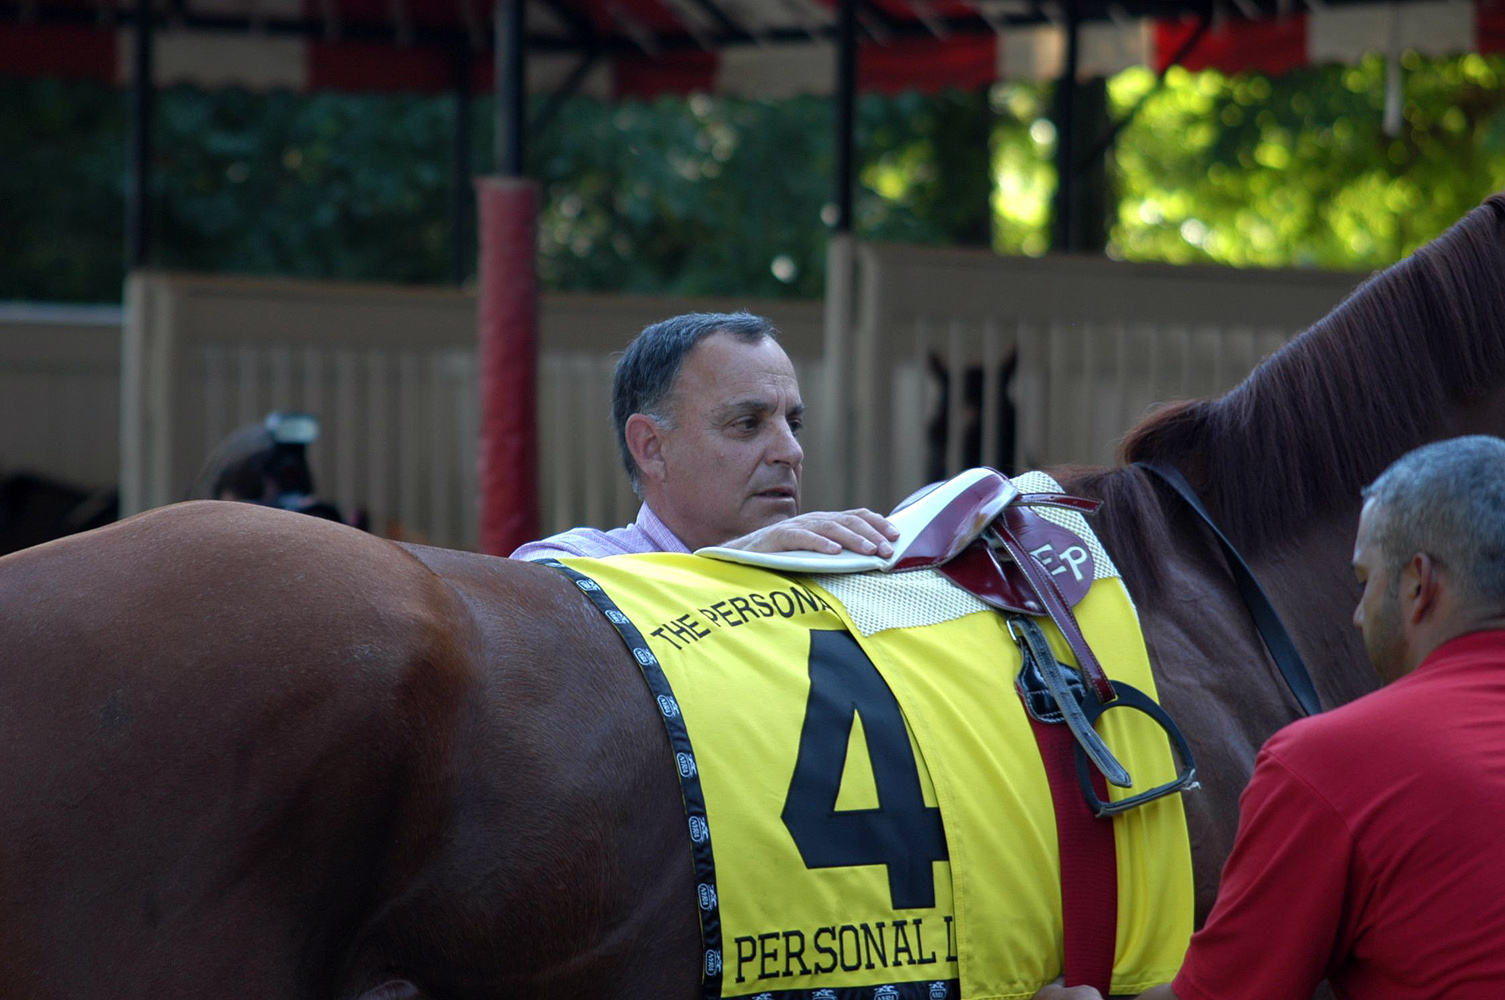 Bobby Frankel saddling in the Saratoga Paddock, August 2005 (Museum Collection)